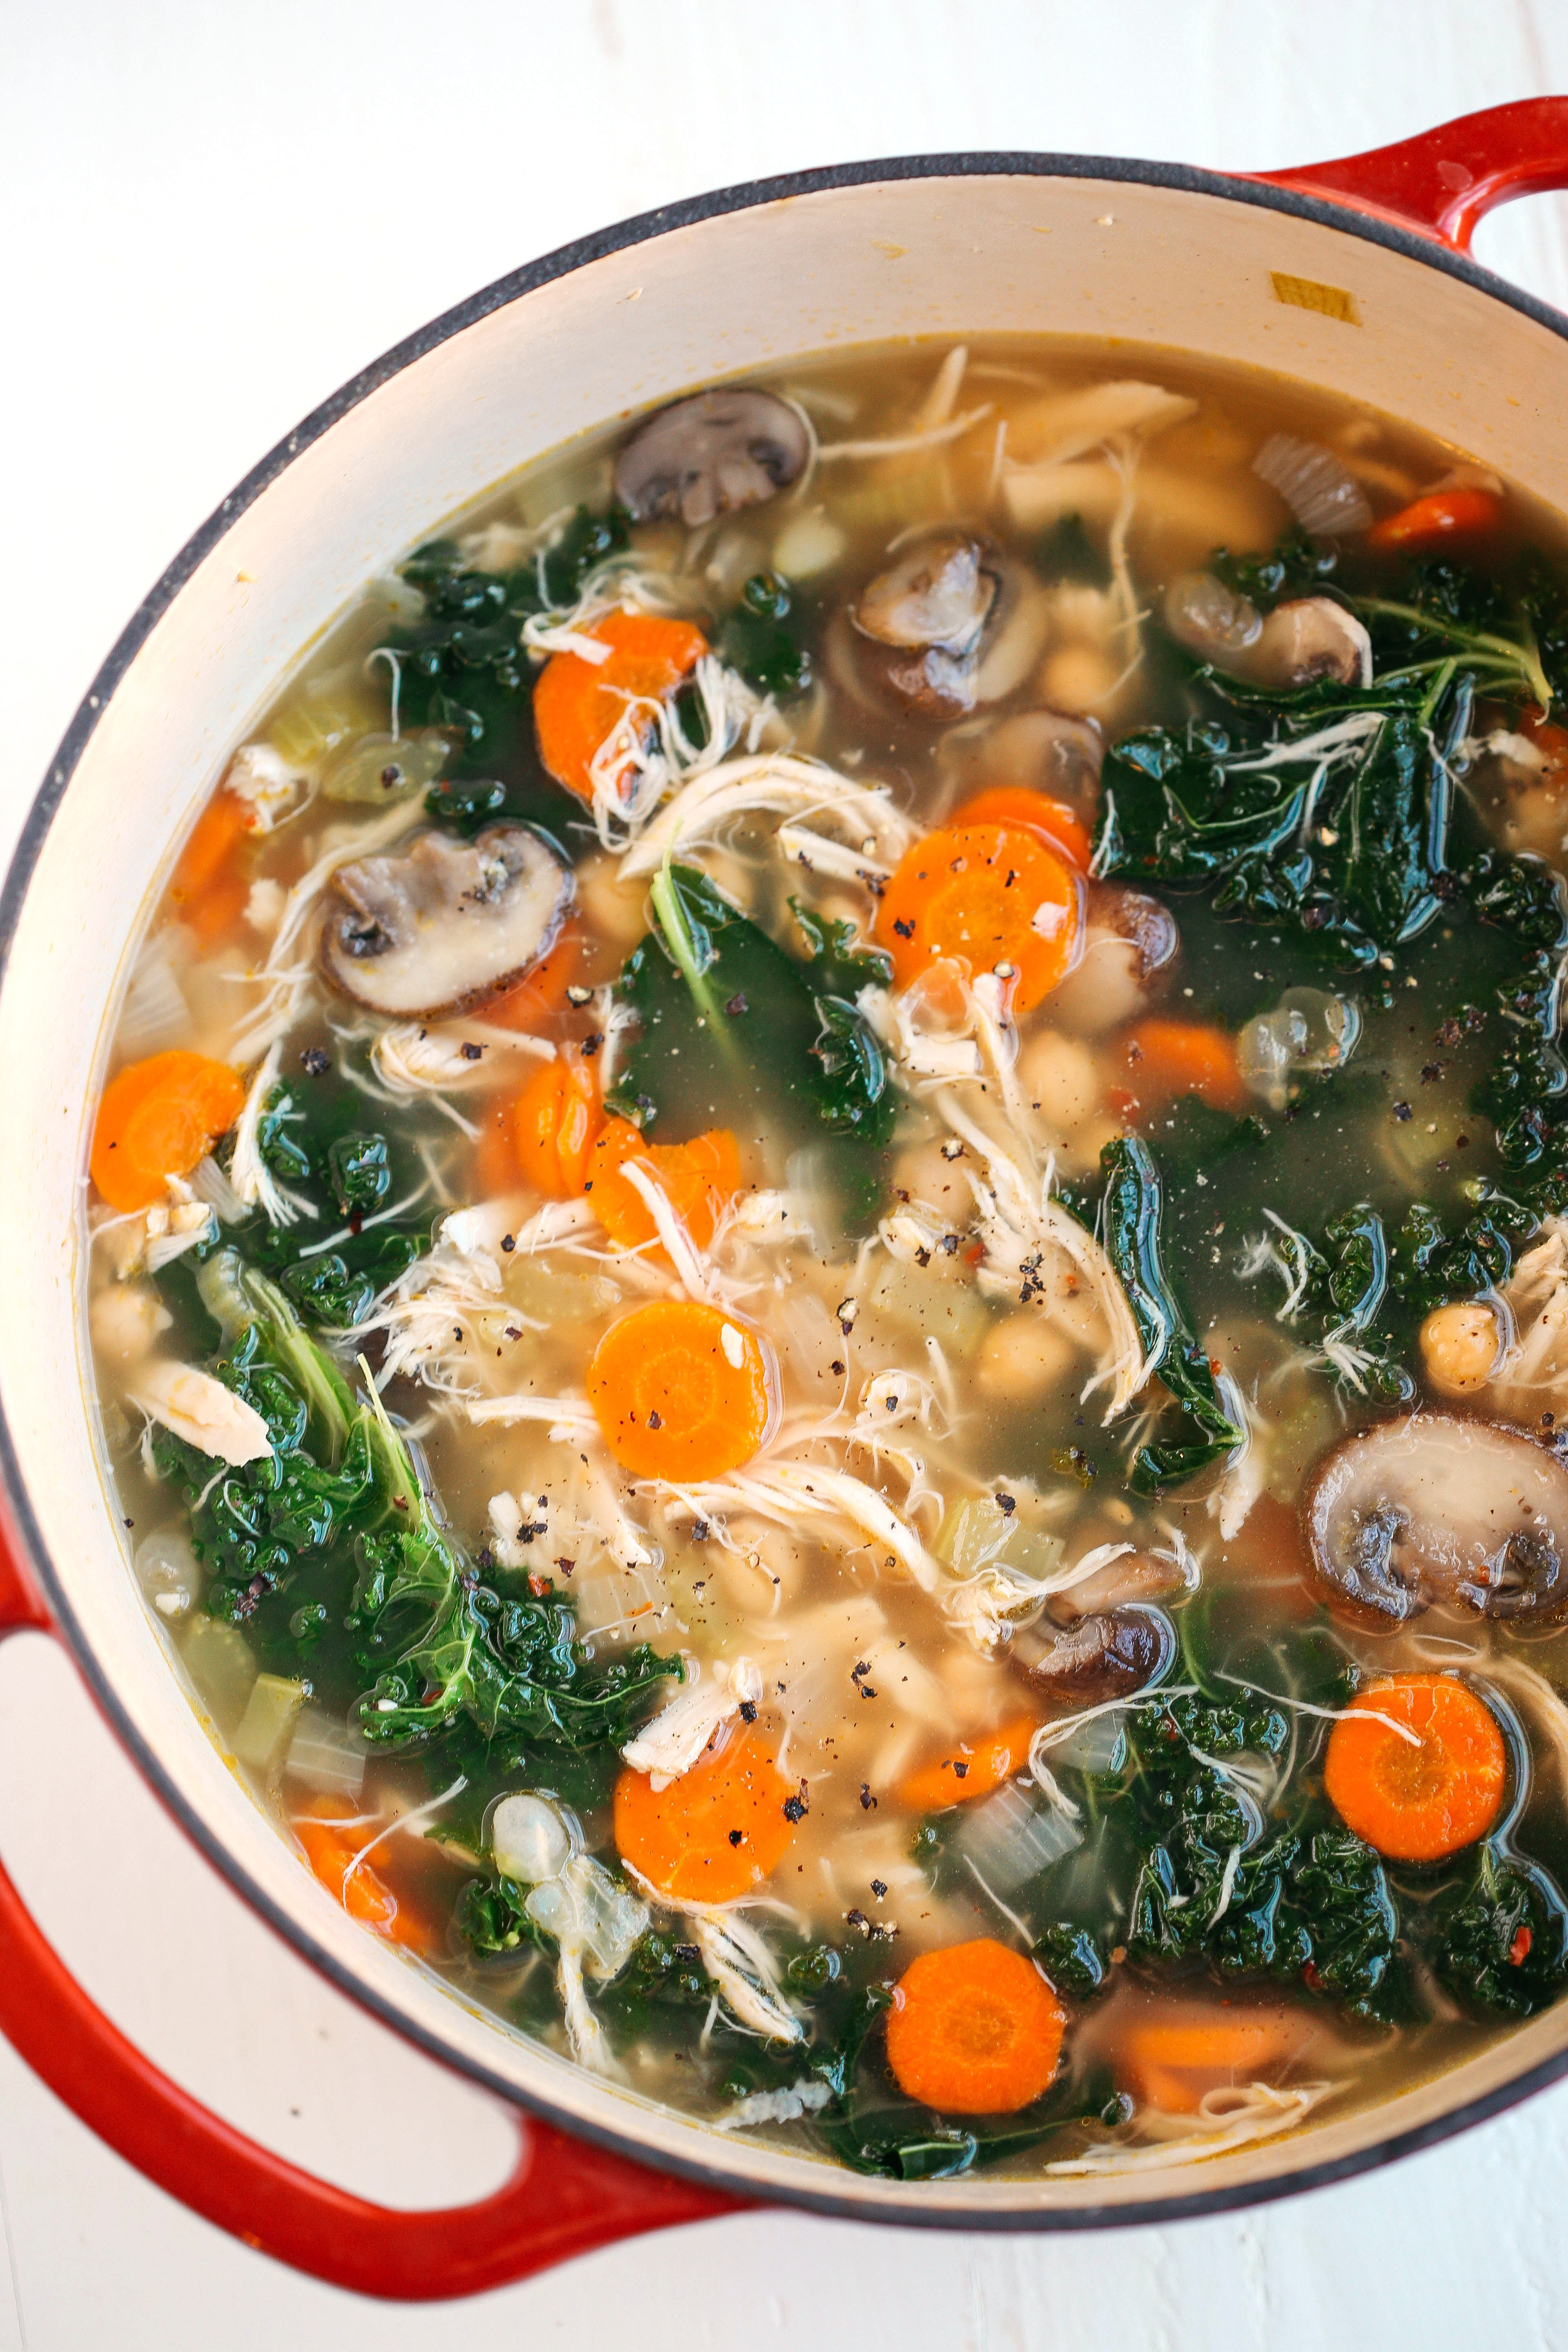 Chicken Soup Healthy  Top 10 Favorite Healthy Soup Recipes Eat Yourself Skinny